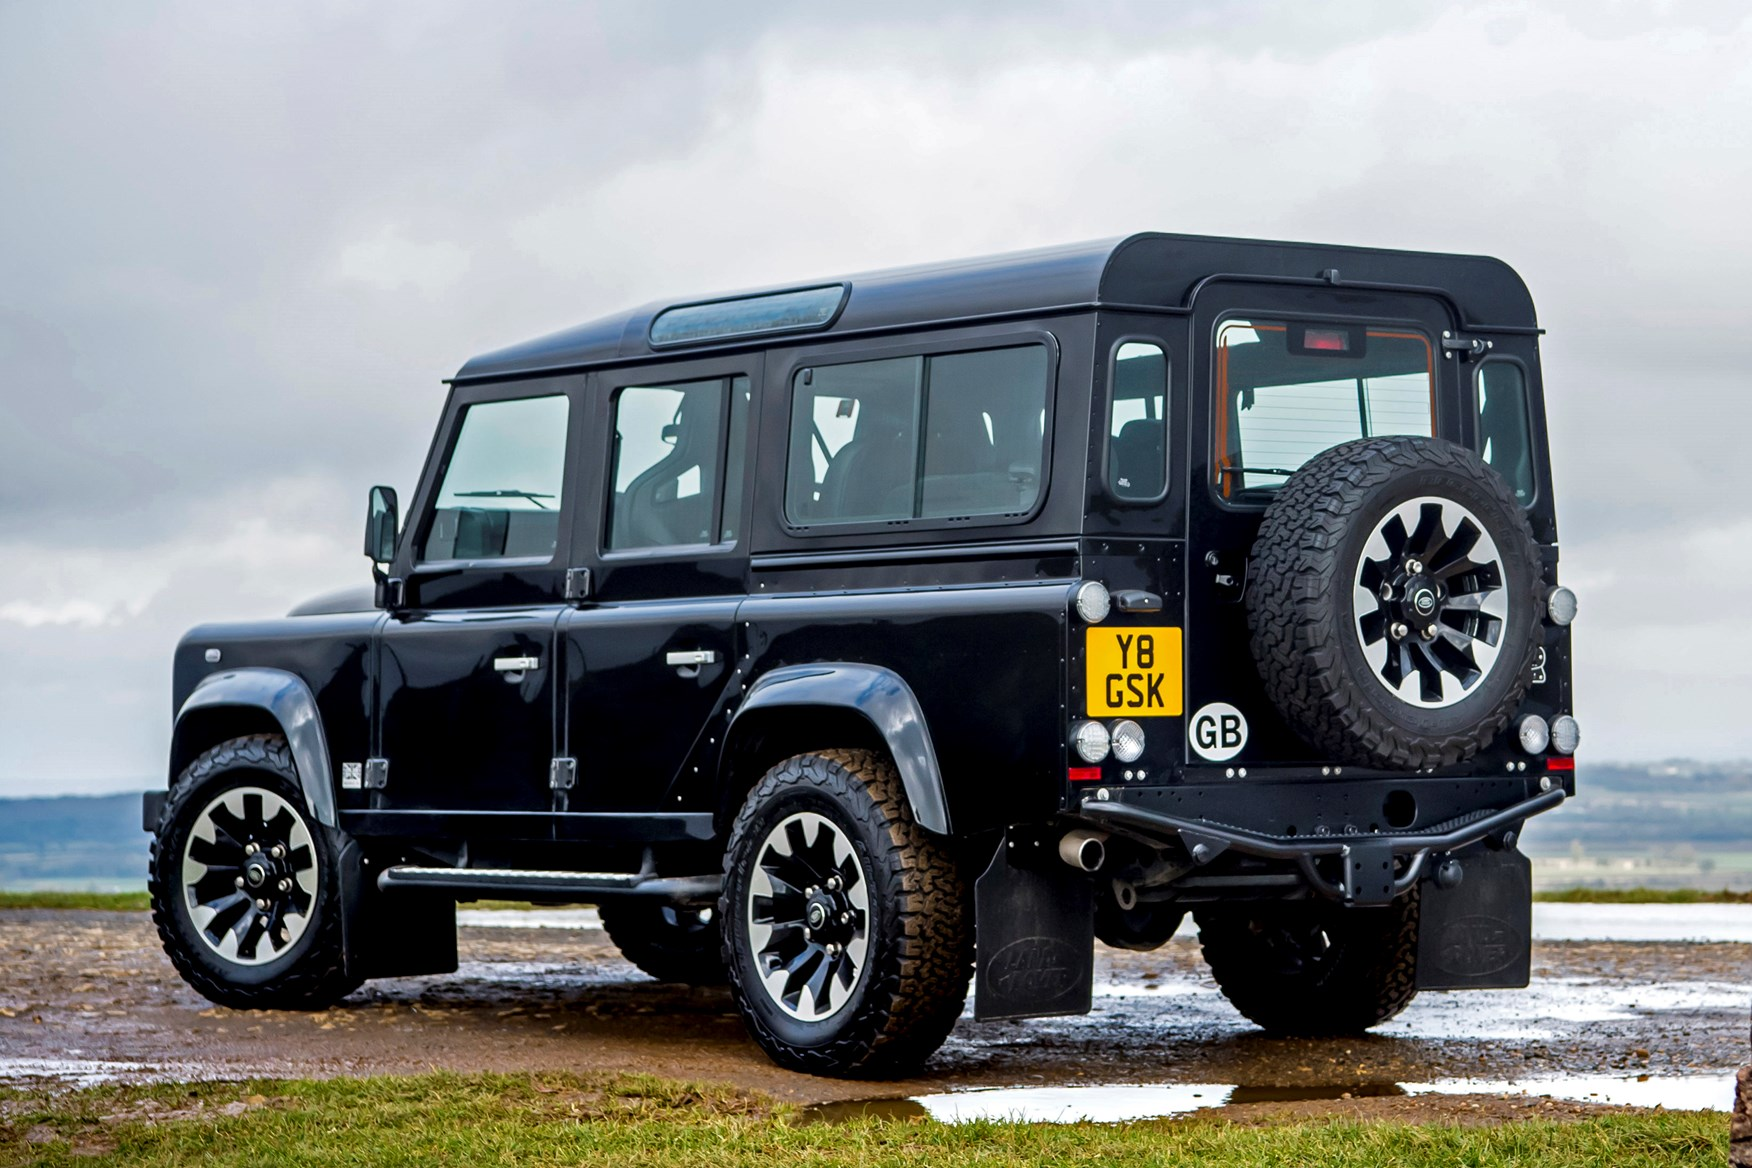 archives olivers land sale for tag classics defender rover td